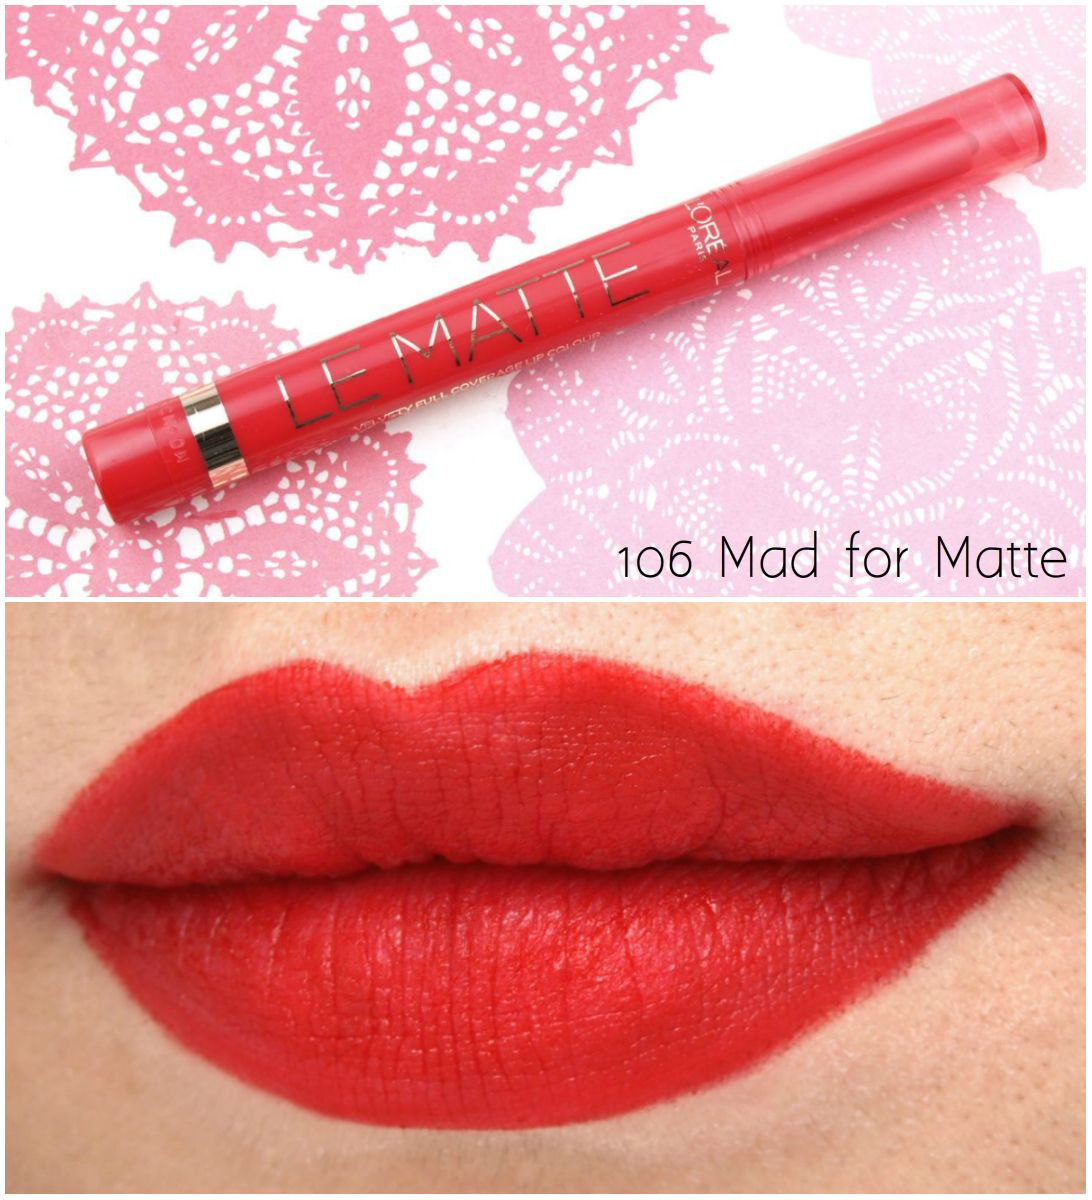 L Oreal Le Matte La Lacque Full Coverage Lip Colors Review And Swatches Lip Colors Colors For Skin Tone Loreal